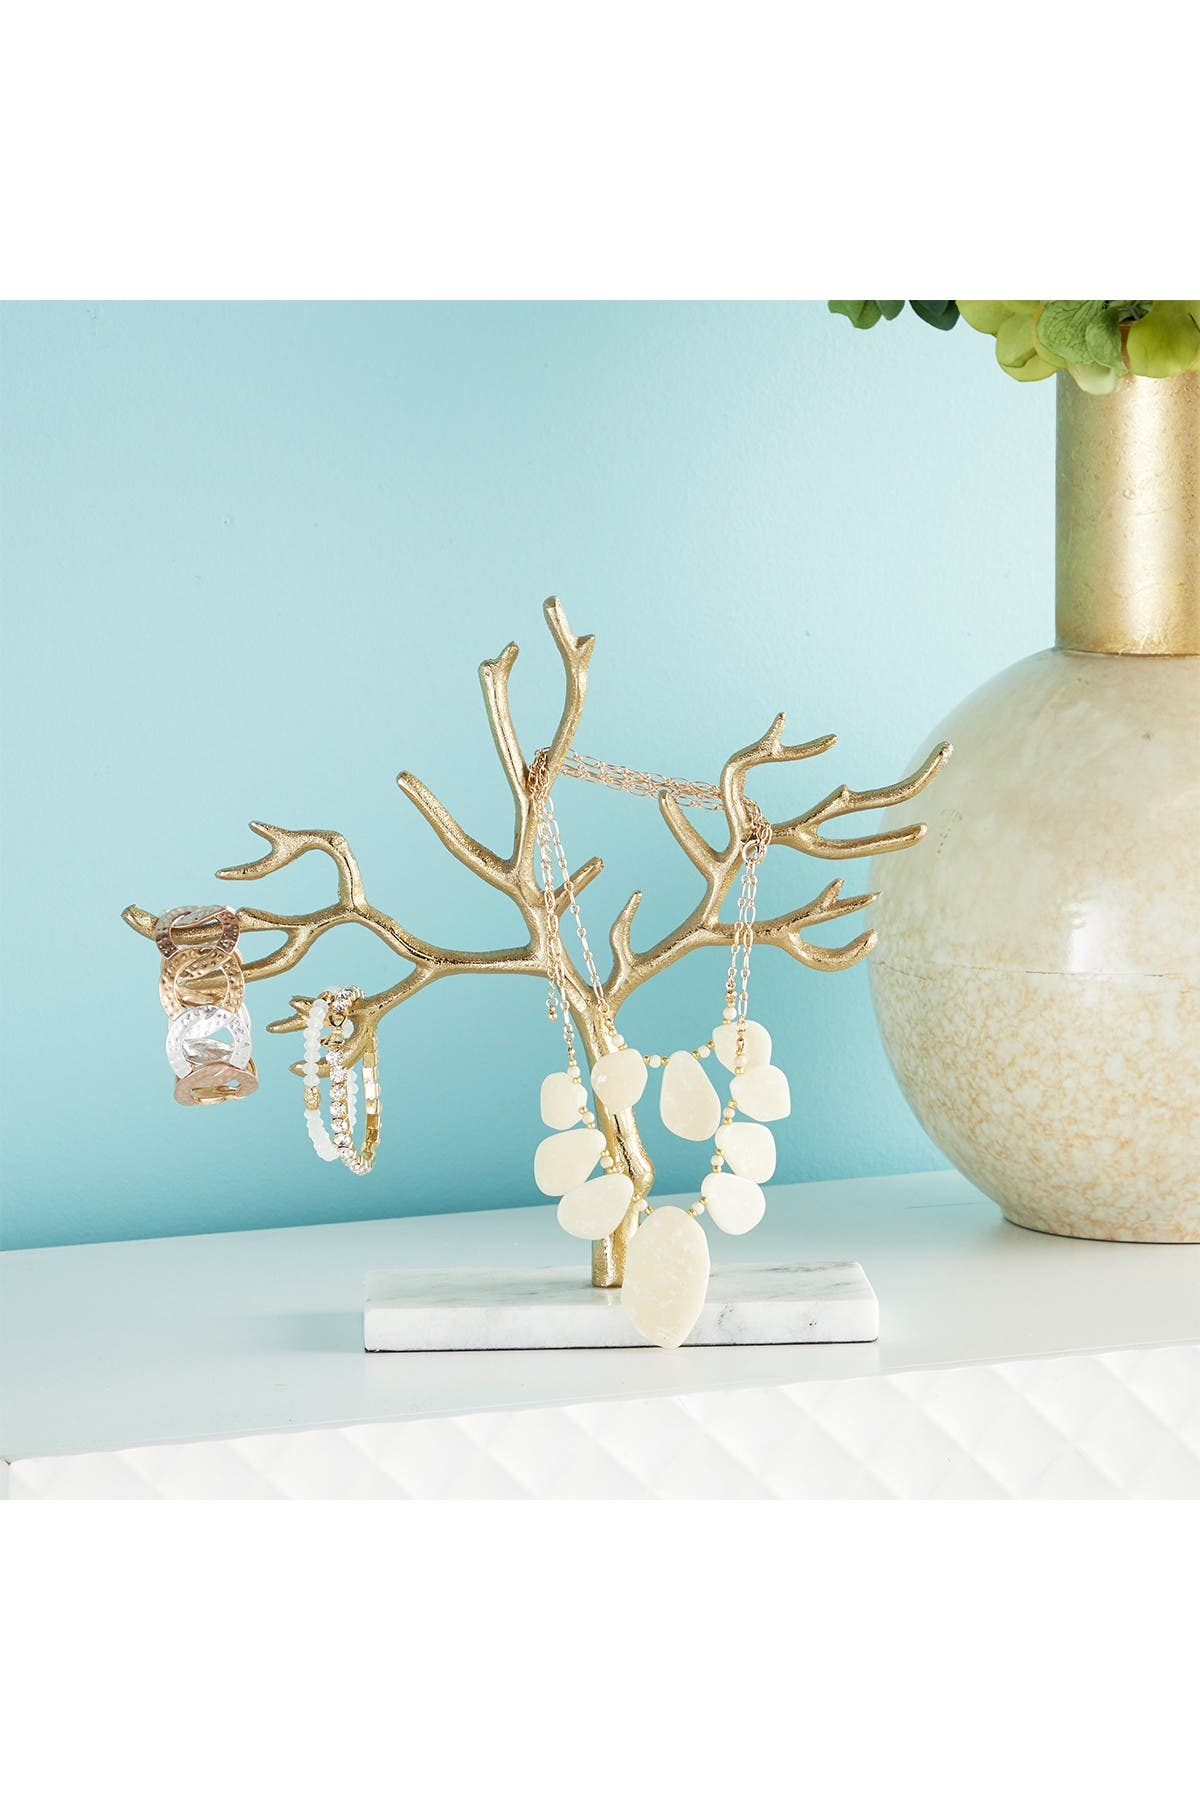 Image of CosmoLiving by Cosmopolitan Tall Metallic Gold Metal Jewelry Tree on White Marble Base